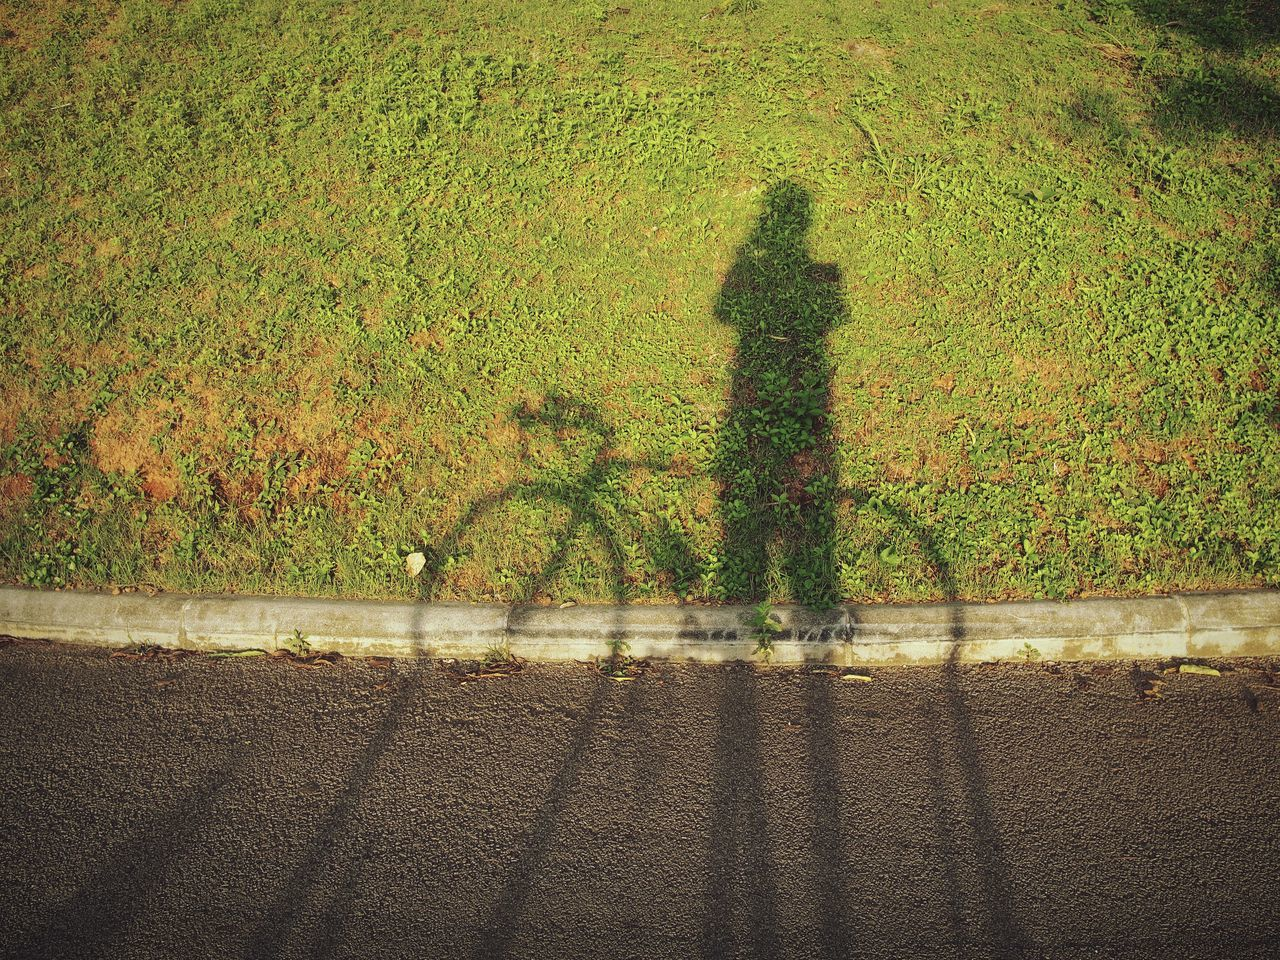 Day Outdoors Nature Green Color Grass Shadow And Light Cycling Human Ride Fuji Bicycle Park Life Tree Bicycle Nature The Great Outdoors - 2017 EyeEm Awards Sommergefühle